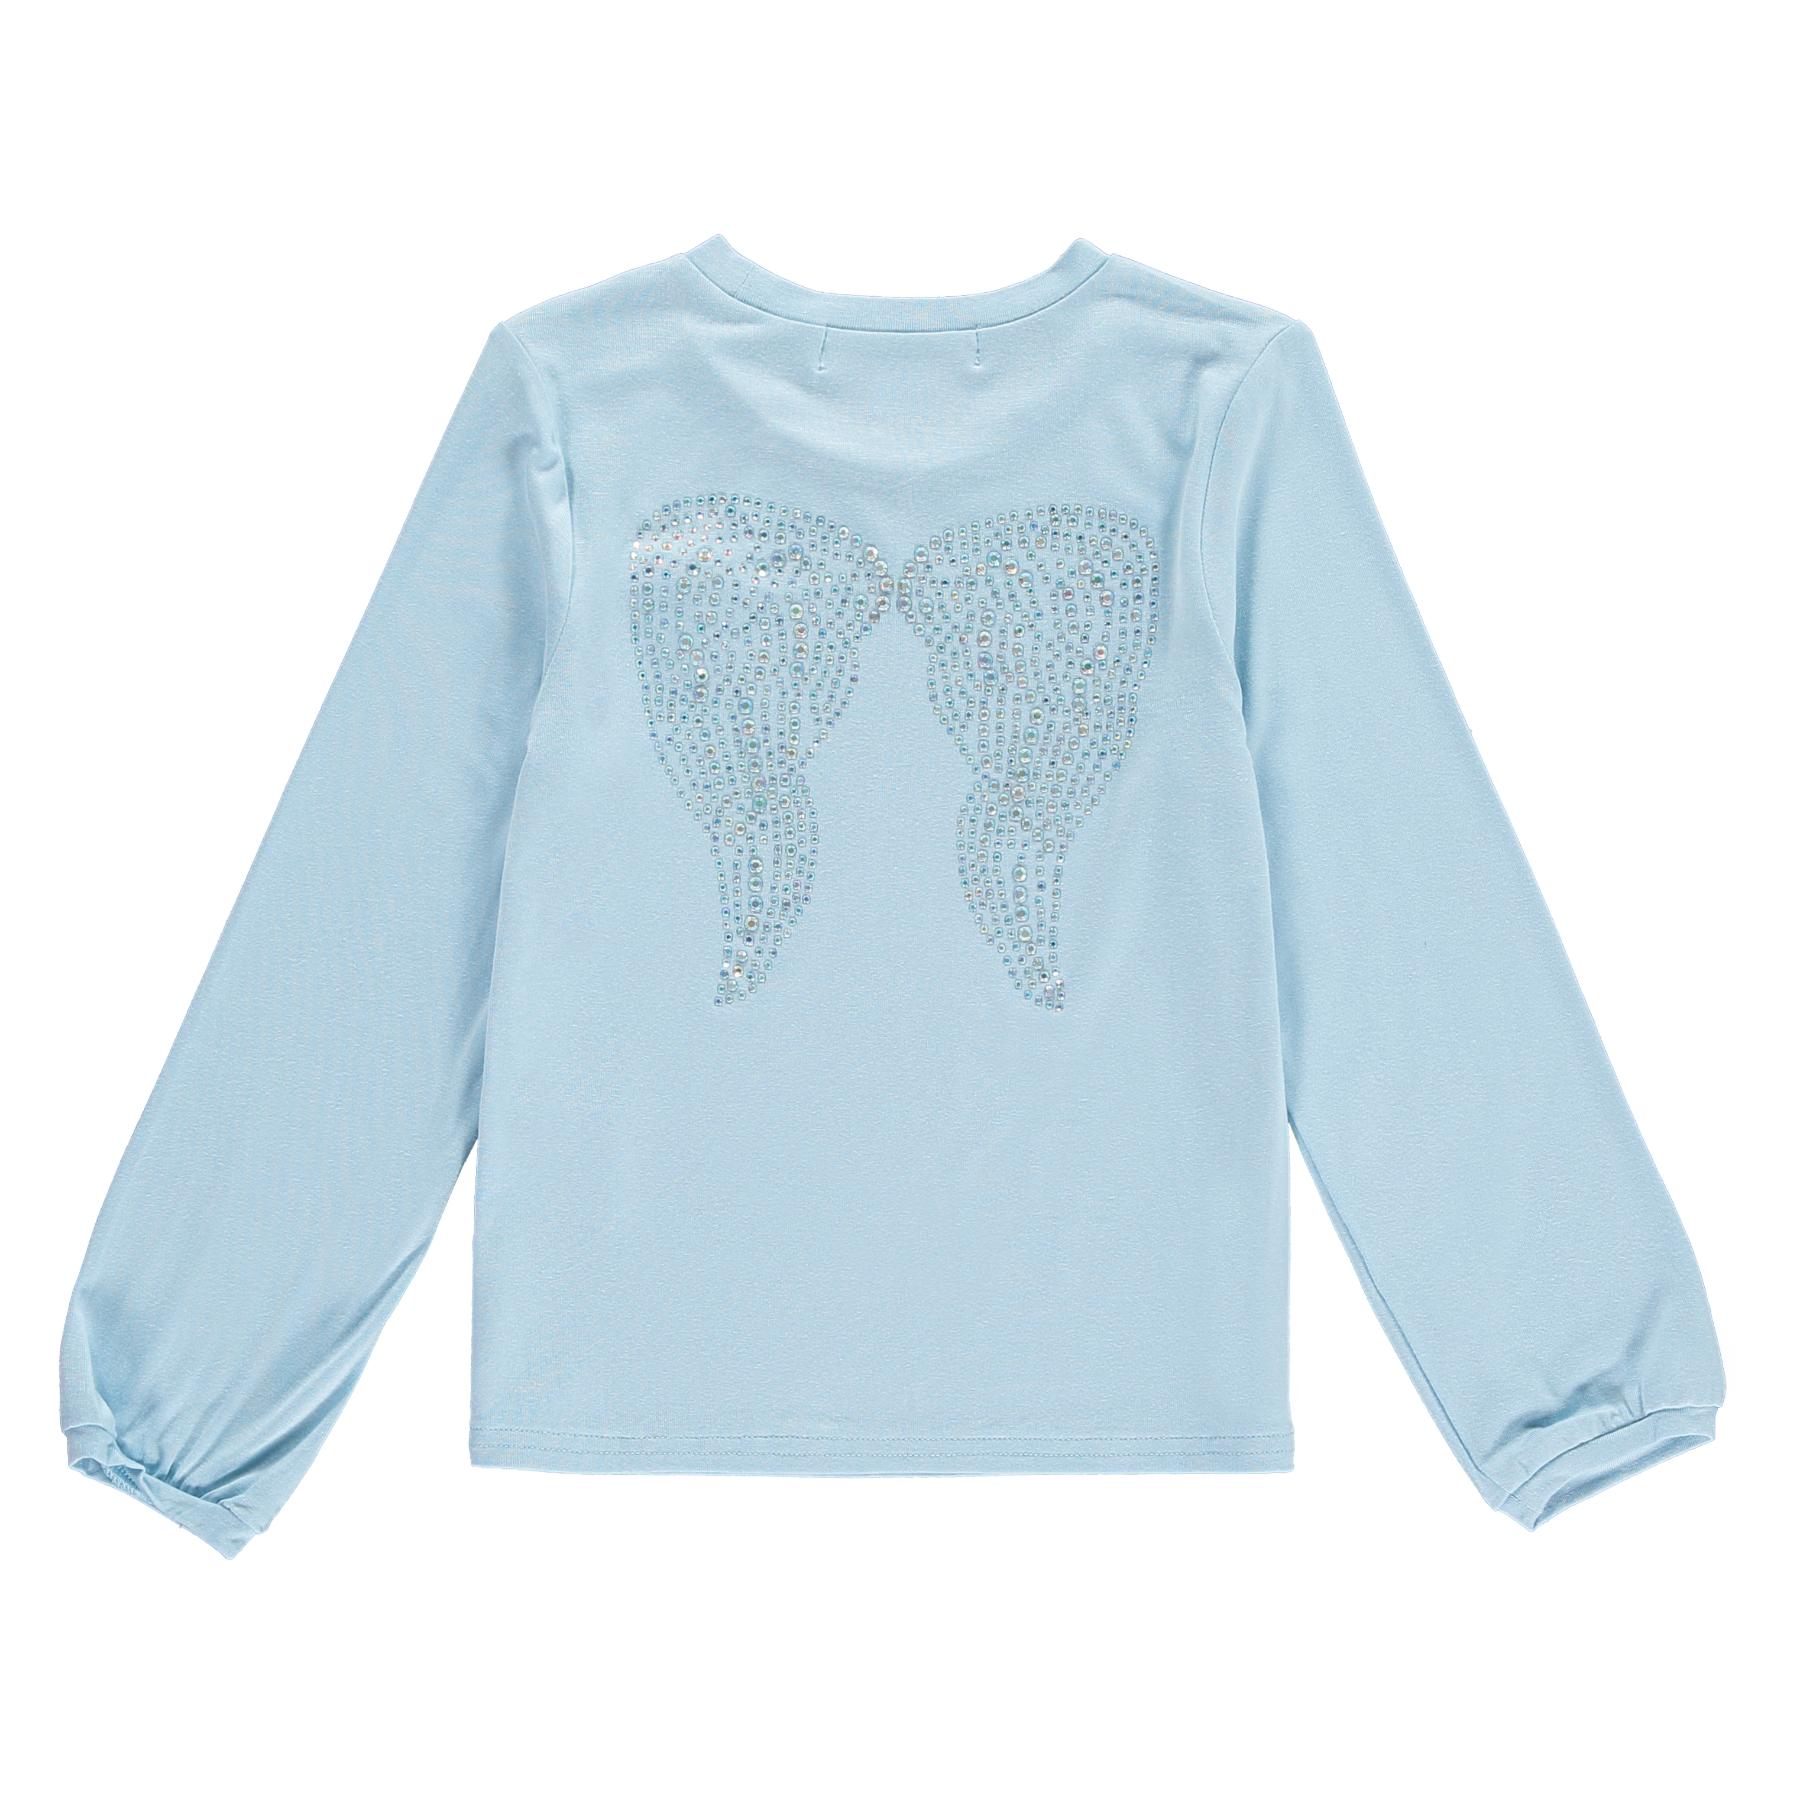 ANGELS FACE CRYSTAL WINGS SILKY KNIT TOP CWTD